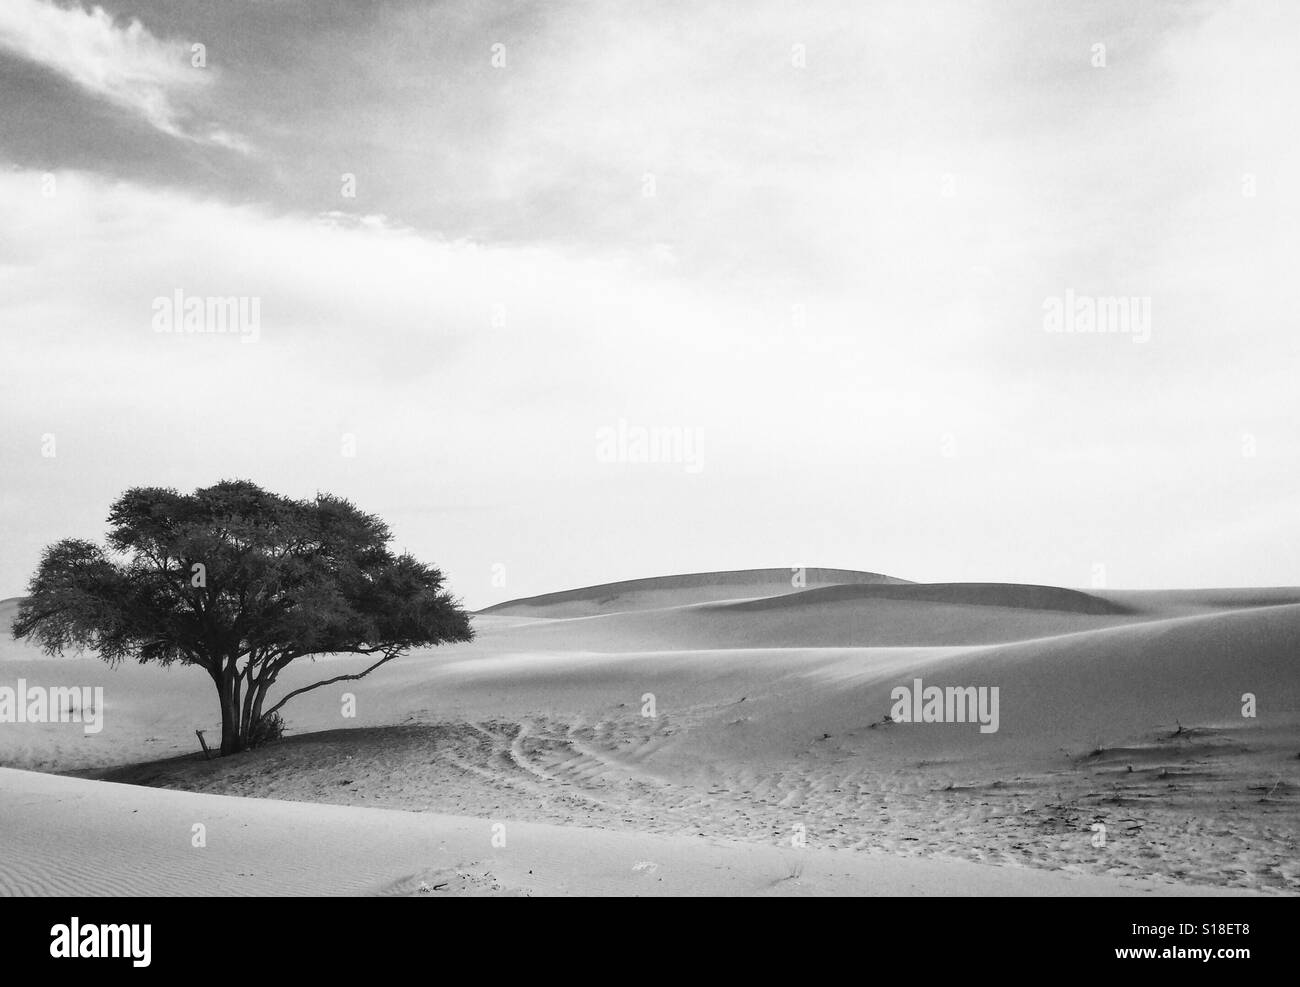 Loneliness contrasted - Stock Image